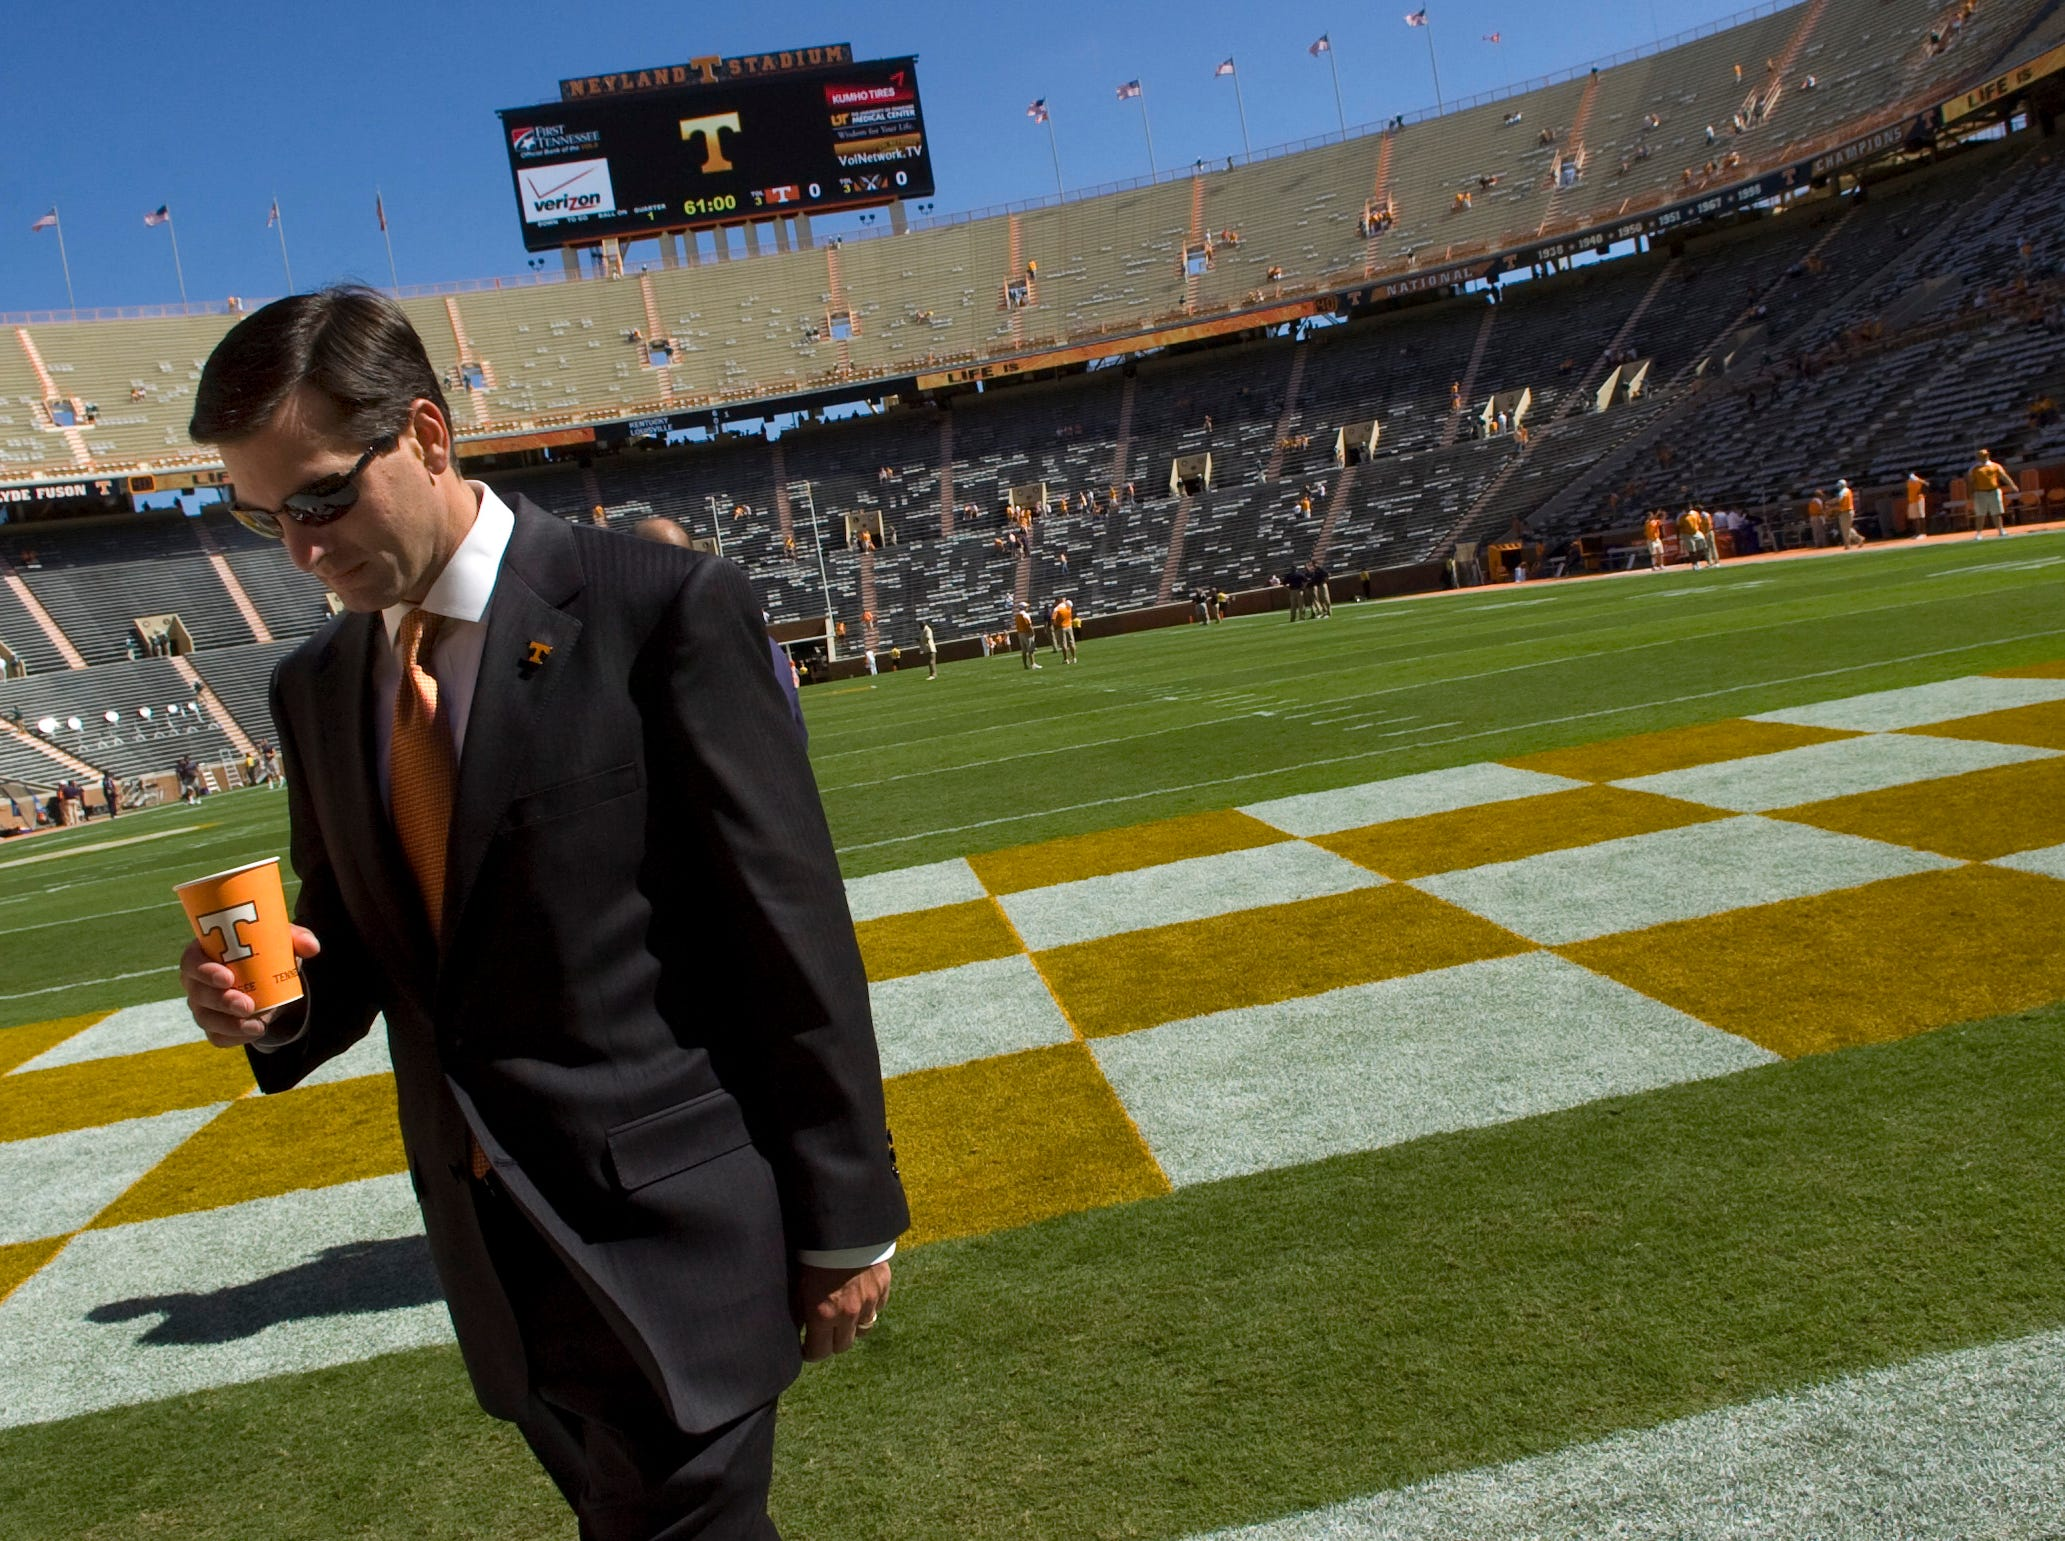 UT head coach Derek Dooley heads to the locker room after checking the field prior to the home opener against UT Martin at Neyland Stadium on Saturday, Sept. 4, 2010. The Vols' season opener was a 50 - 0 victory in Derek Dooley's debut as head coach.